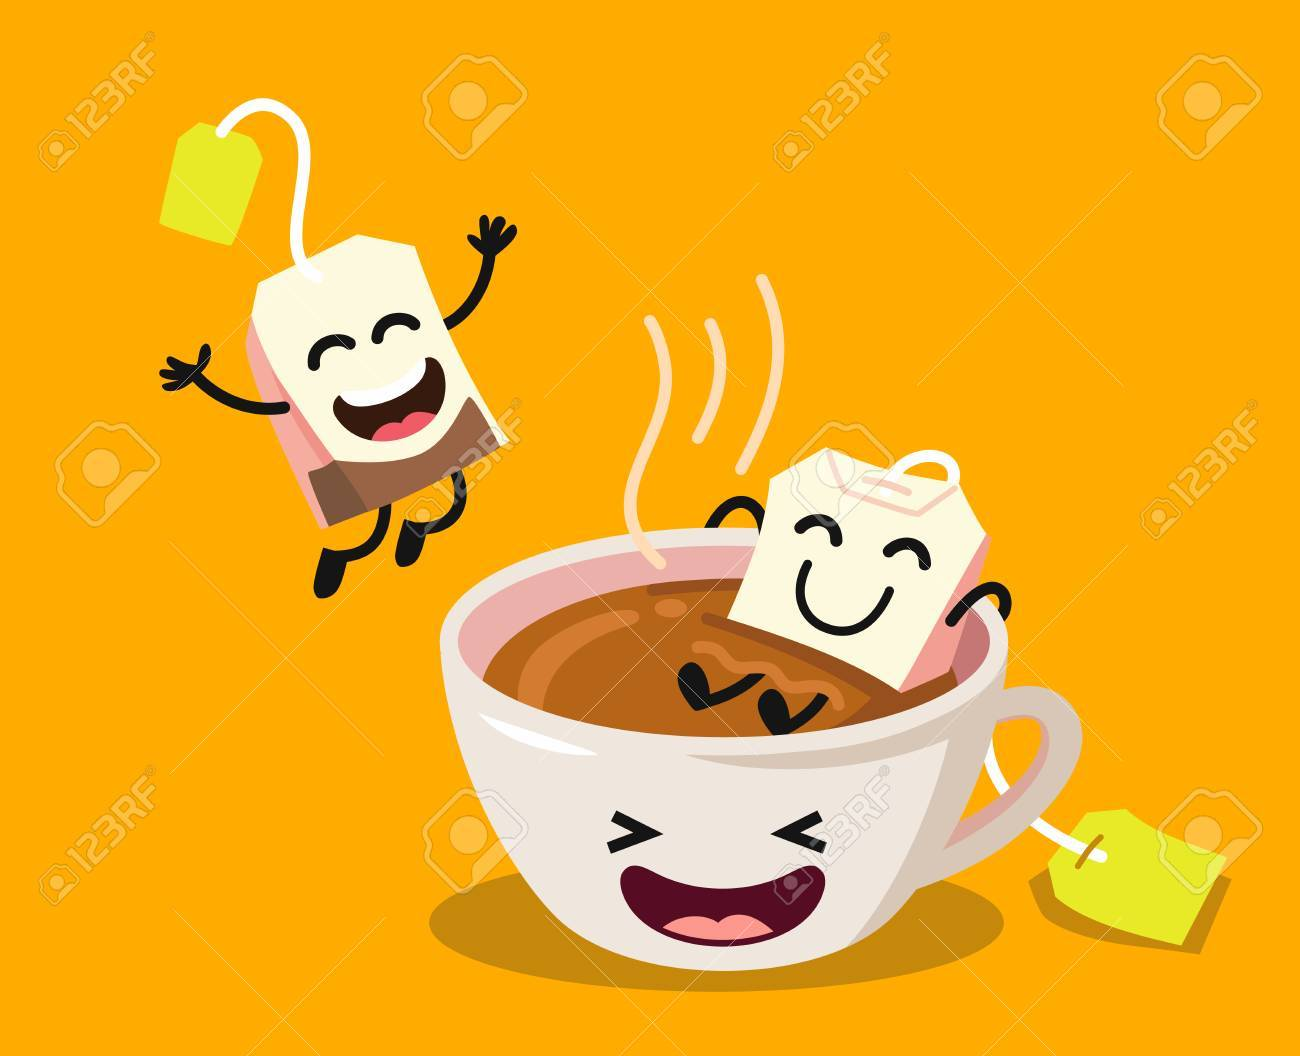 Cute cartoon cup of tea with happy tea bags on yellow background. Vector flat illustration - 88598213